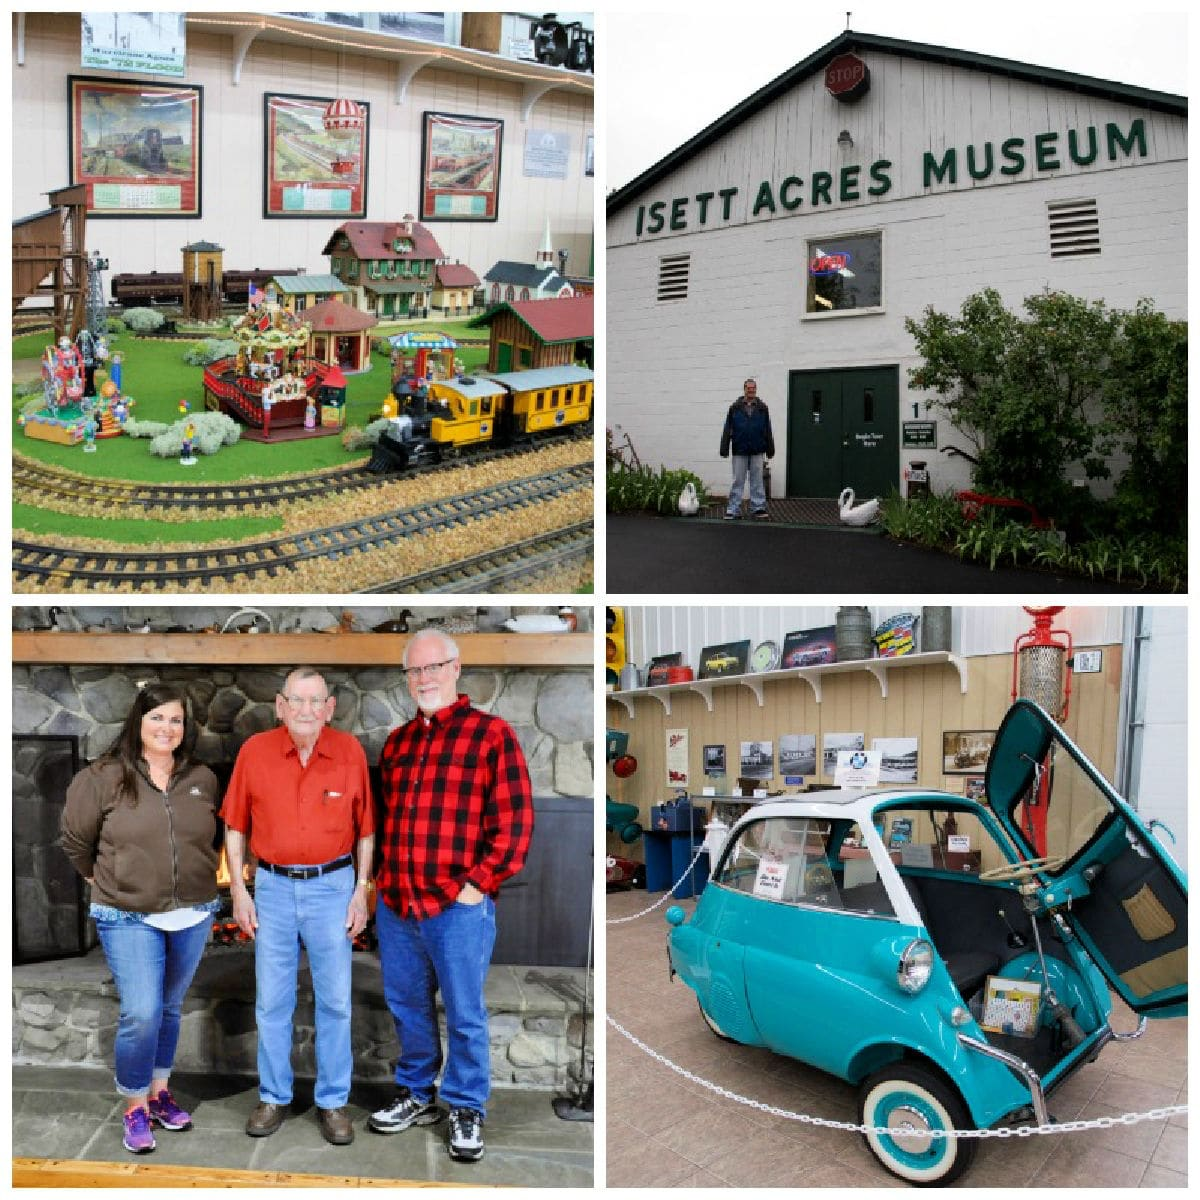 Huntingdon, Pennsylvania has a unique attraction called Isett Acres Museum, which houses millions of antiquities and memorabilia.